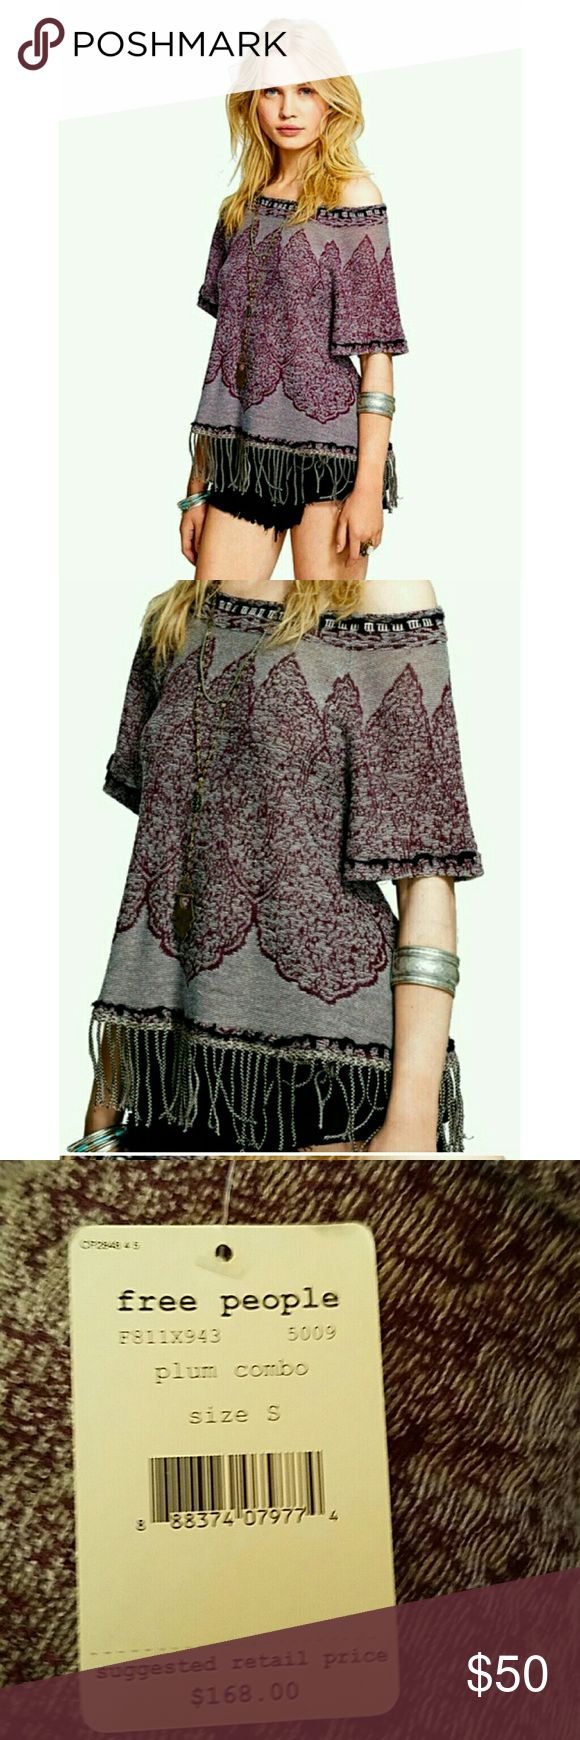 "NWT Free People Kilm Swing Fringe Top Small An exotic knit design lends world-market appeal to a slouchy elbow-sleeve top tailored with a wide, shoulders baring neckline and finished with loads of swings tassels at the hem. 24"" length.  Rayon/wool blend  Plumb combo.  Retail price $168.  Size small. Free People Tops"